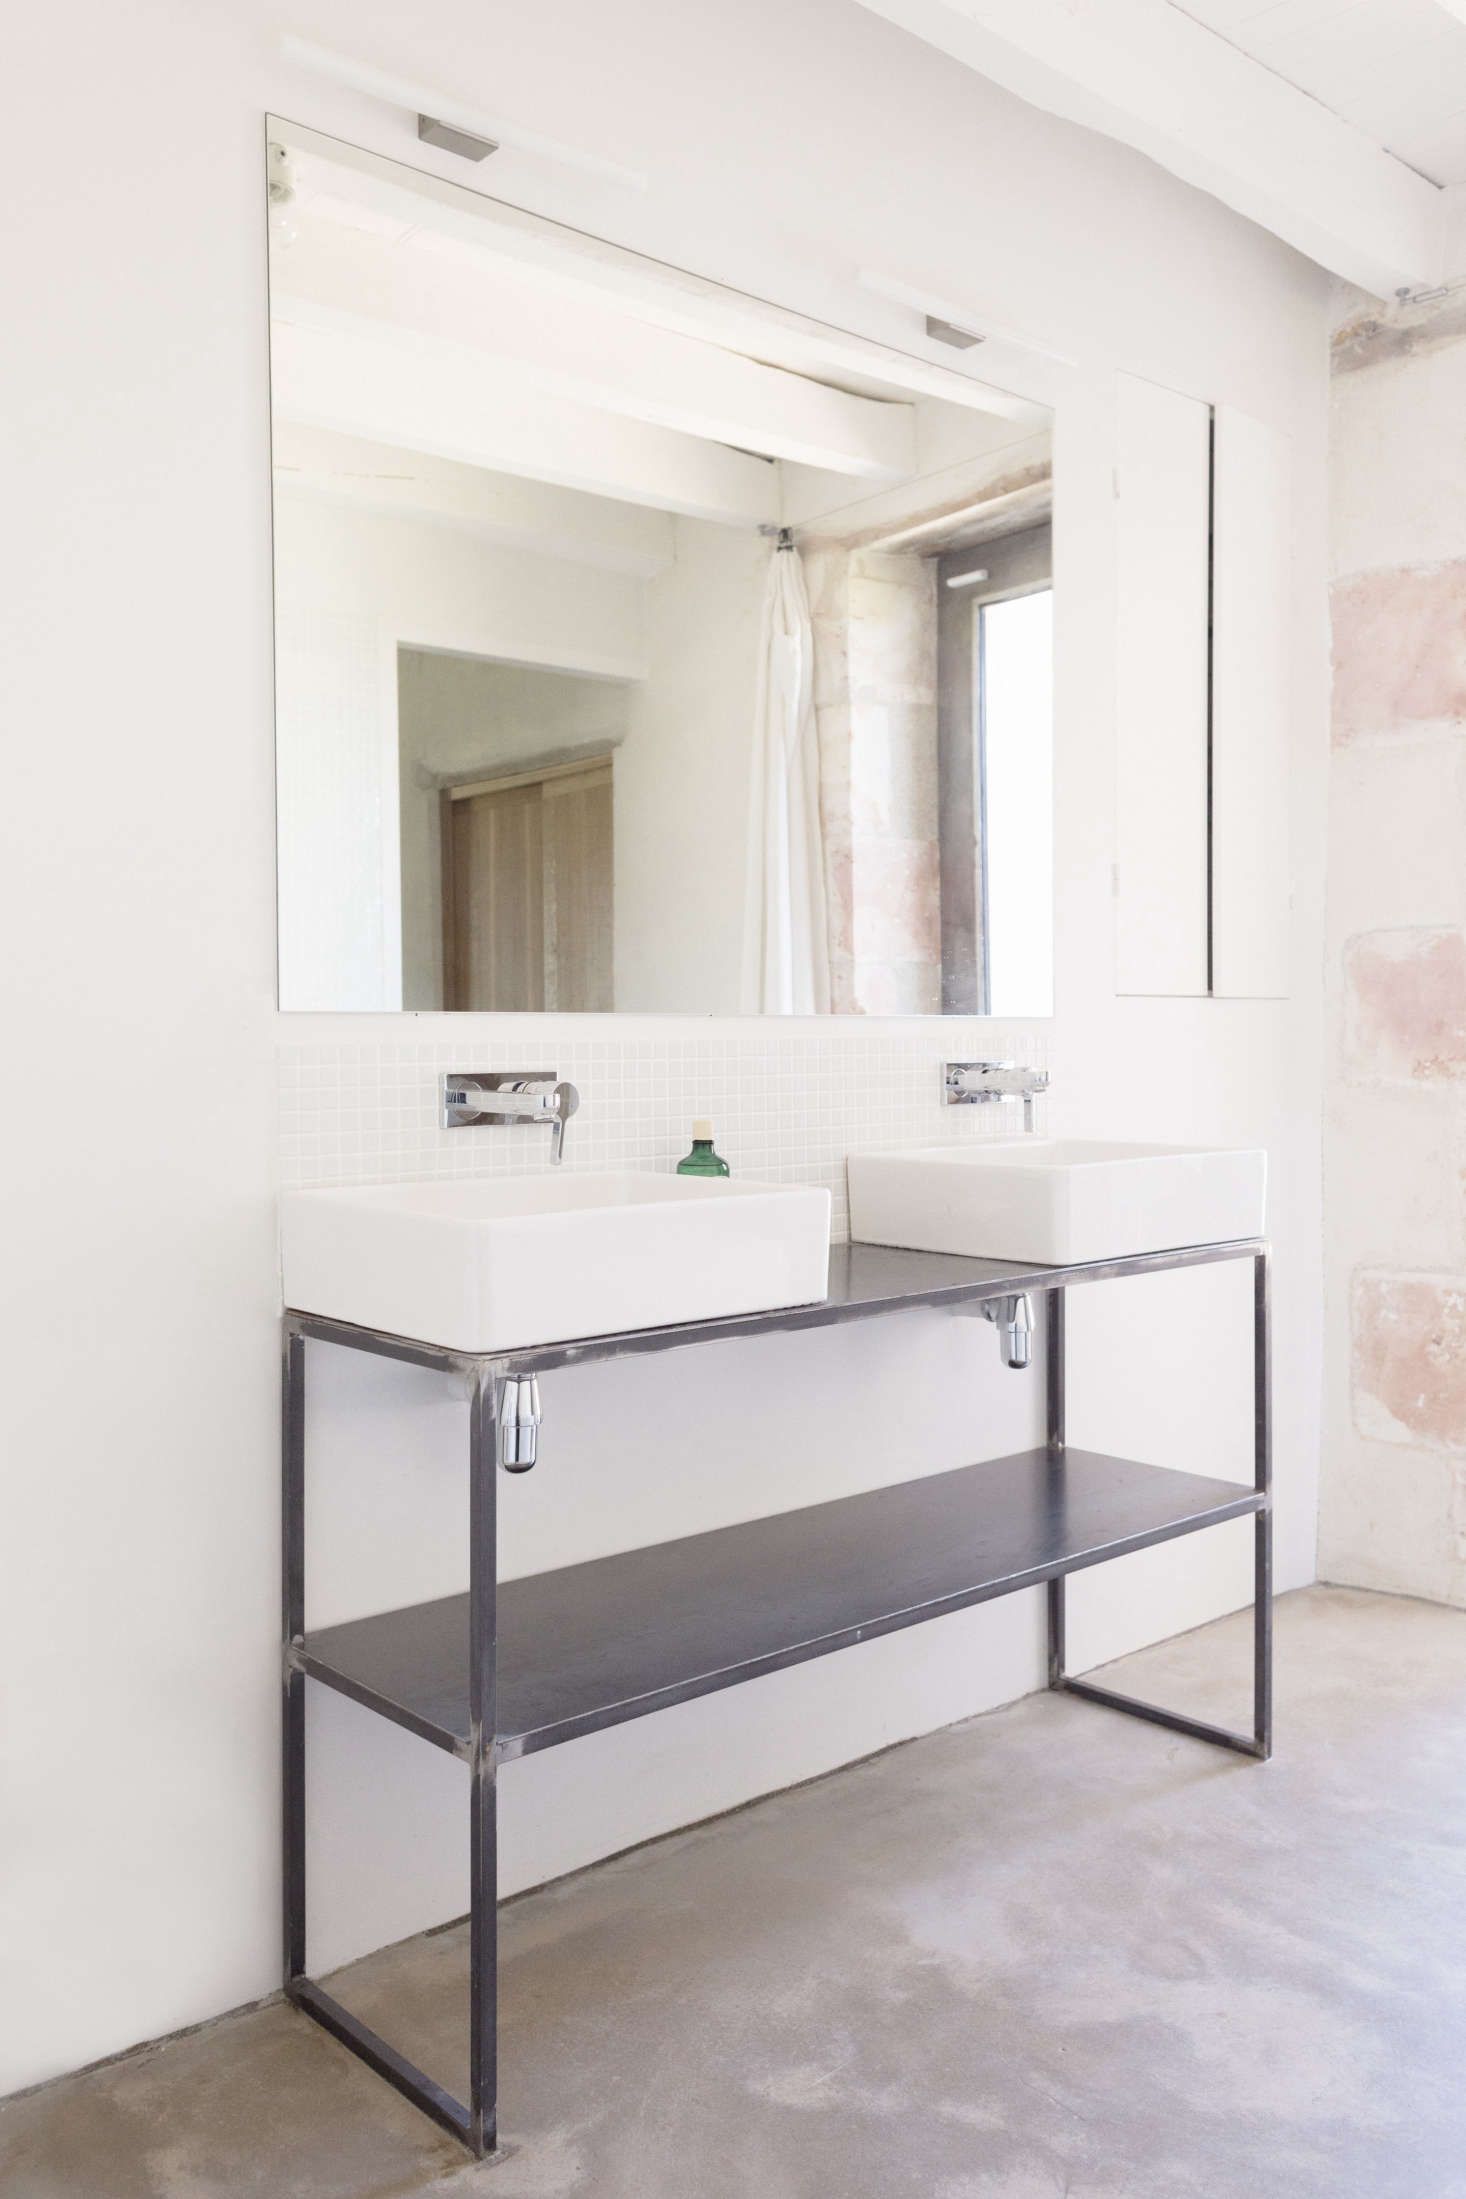 In the bathroom, double sinks stand on a welded-steel customvanity. The Metris Wall-Mounted Faucets are byHansgrohe;$227.50 from YLiving.